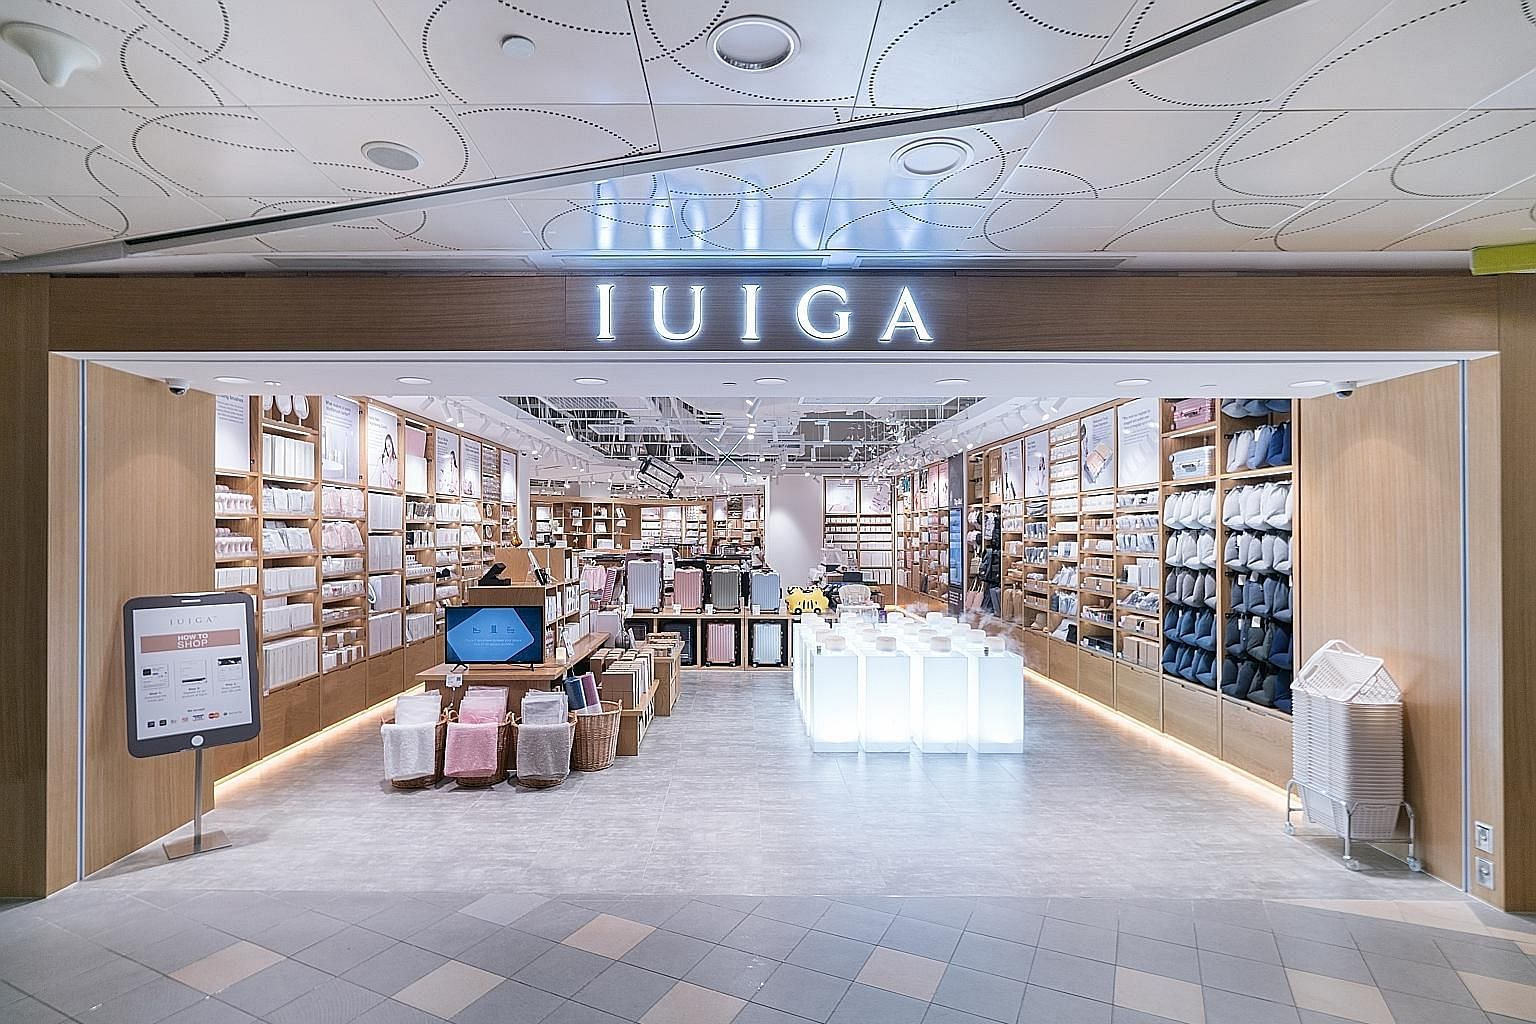 Japanese consumer goods company Muji filed a suit in the Singapore High Court on Jan 25 against local retailer Iuiga, after talks failed to resolve a dispute that arose when Iuiga displayed Muji's mark on its website. Some of Iuiga's product tags als